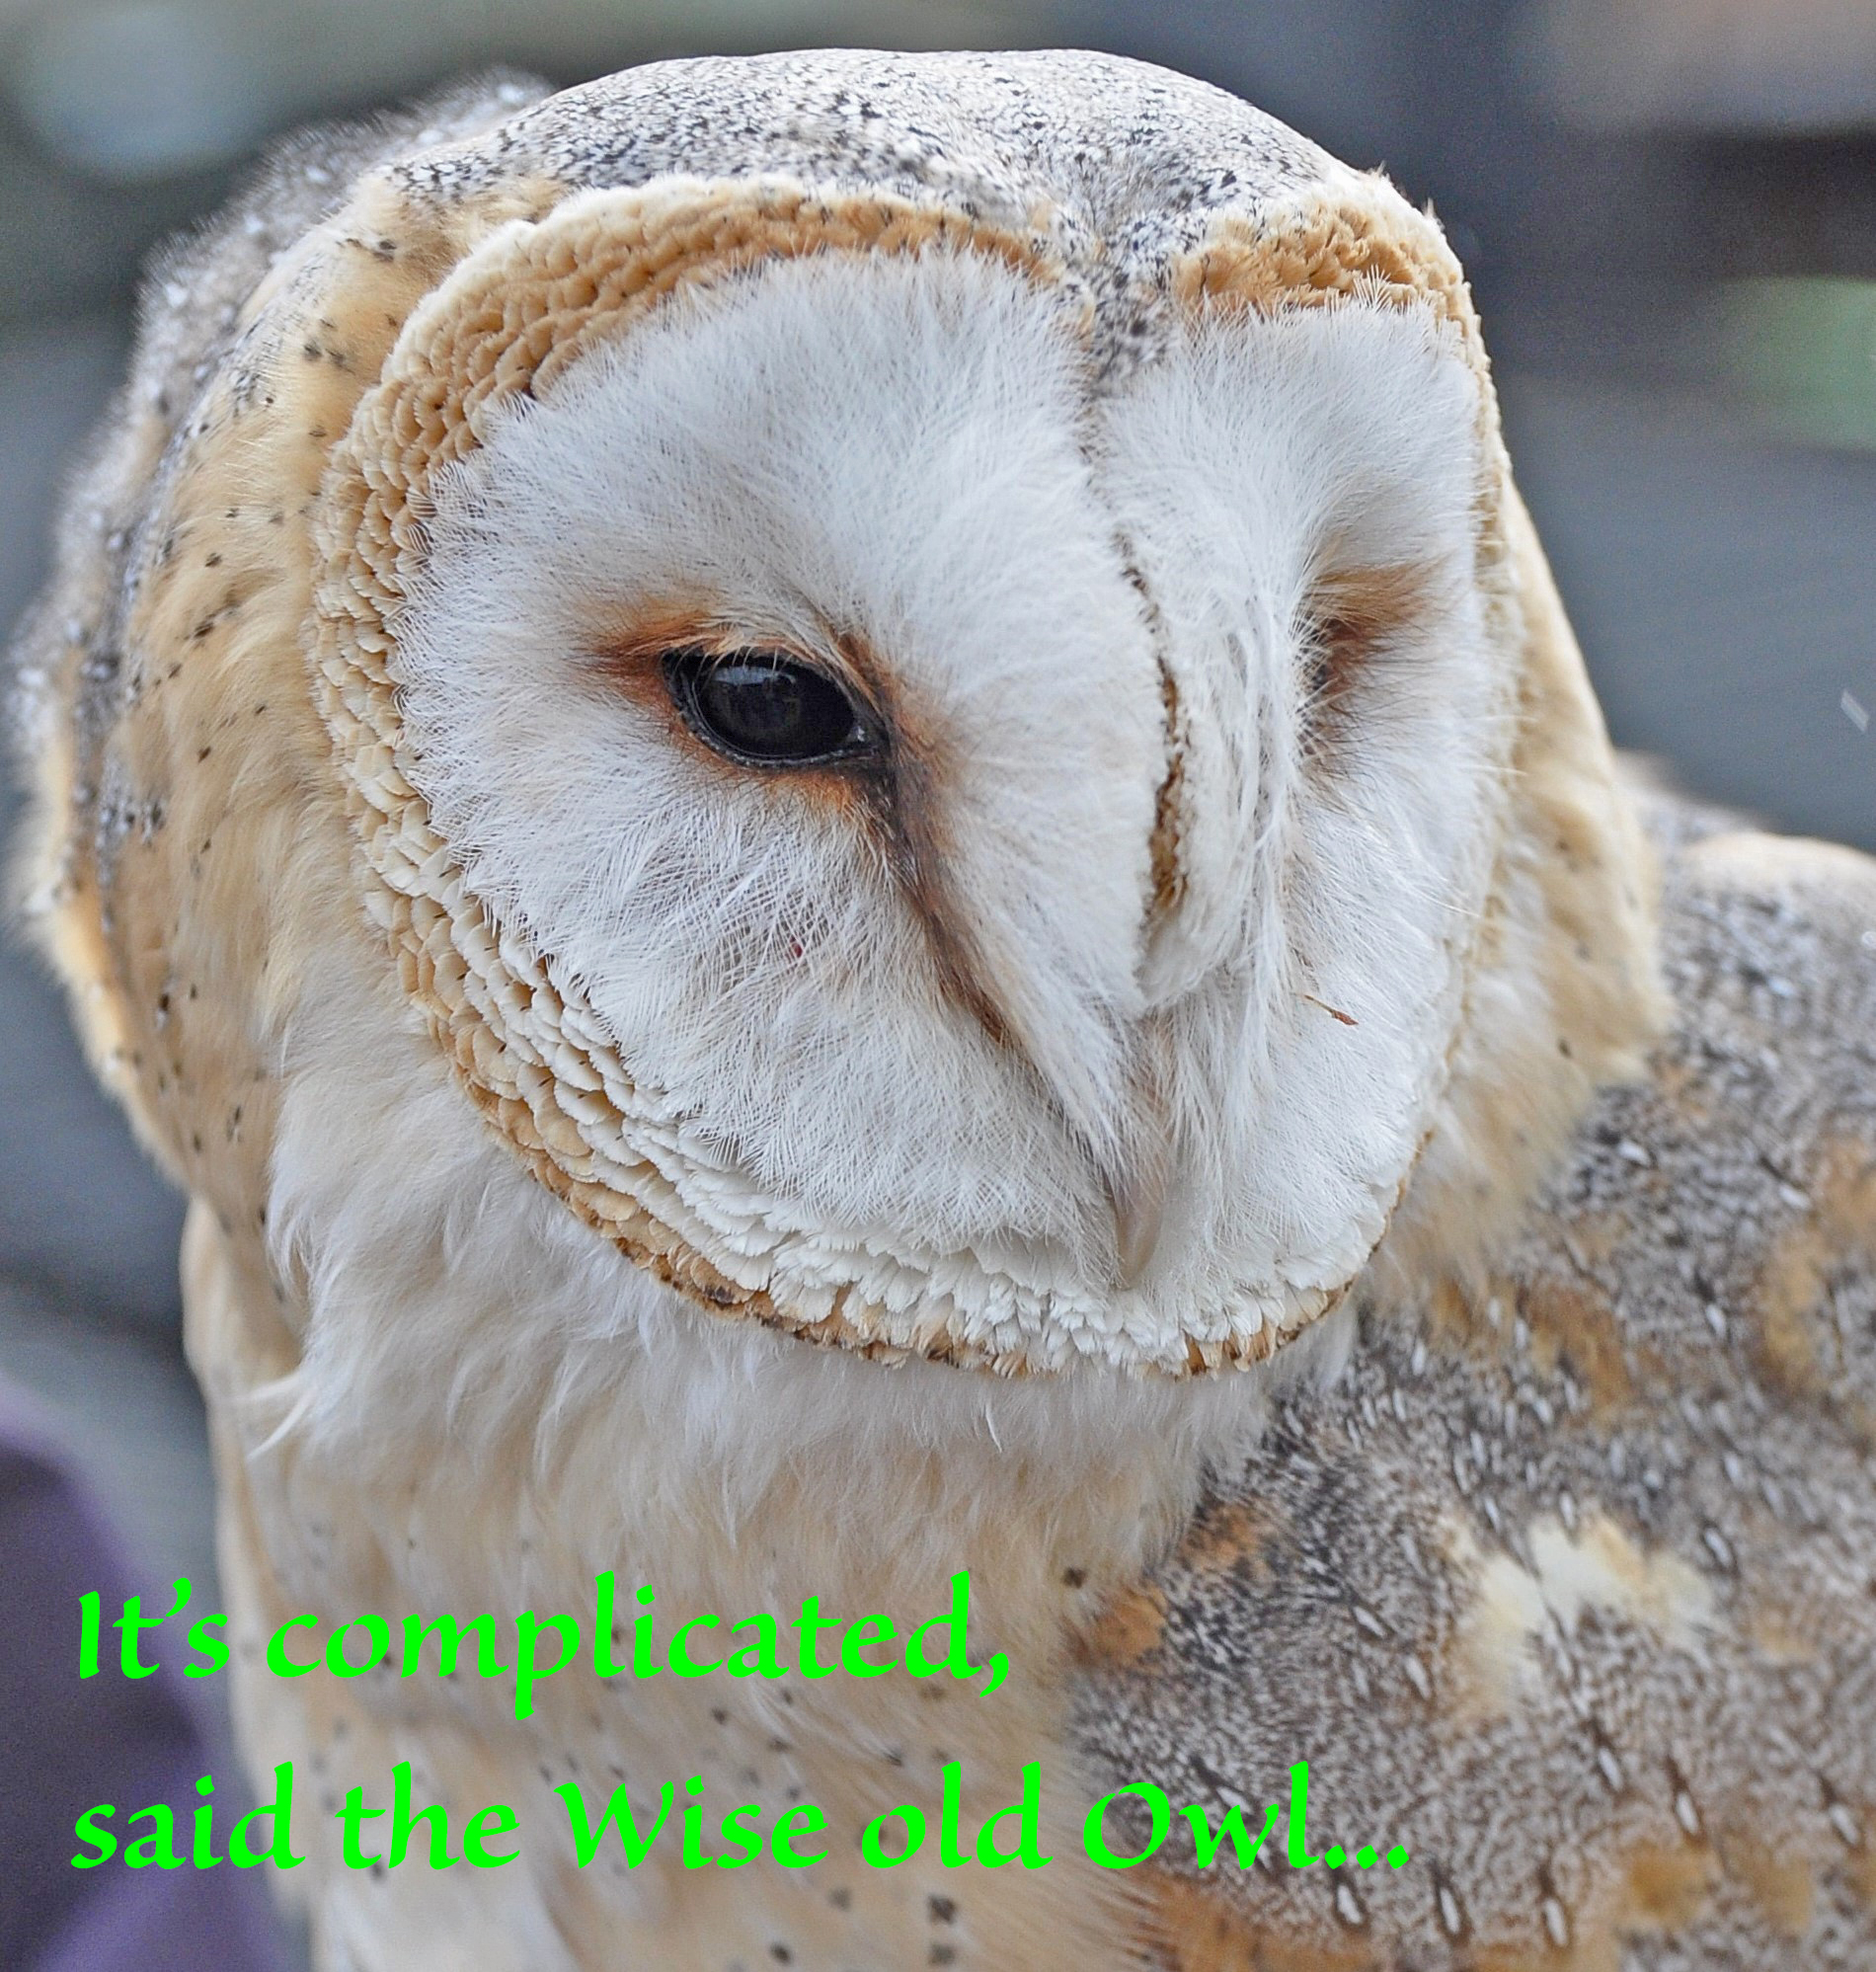 wise old owl 0190Falconry2014_cropowl